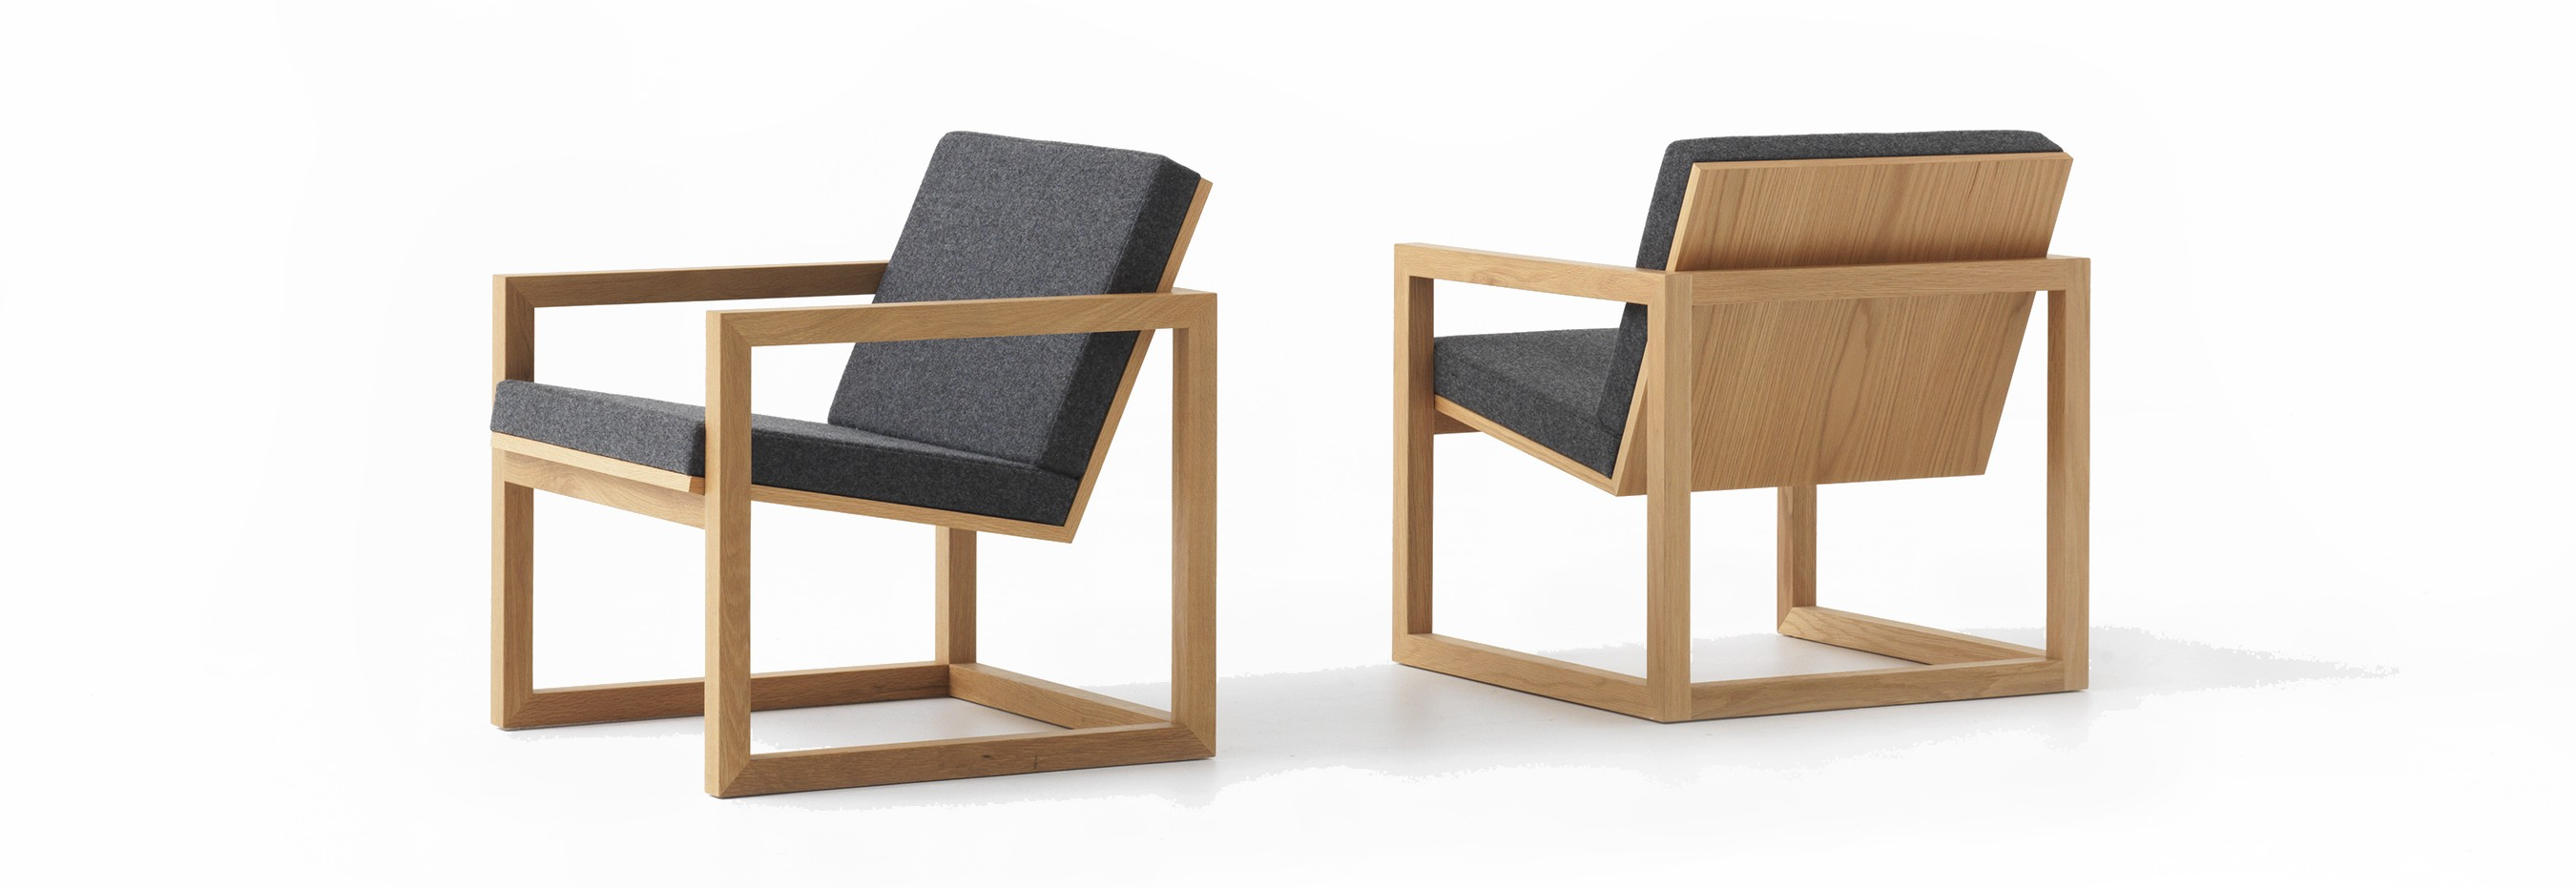 Framed armchair: made from solid American white oak and eminently suitable for the residential and commercial markets. Photo: © David Moreland Design